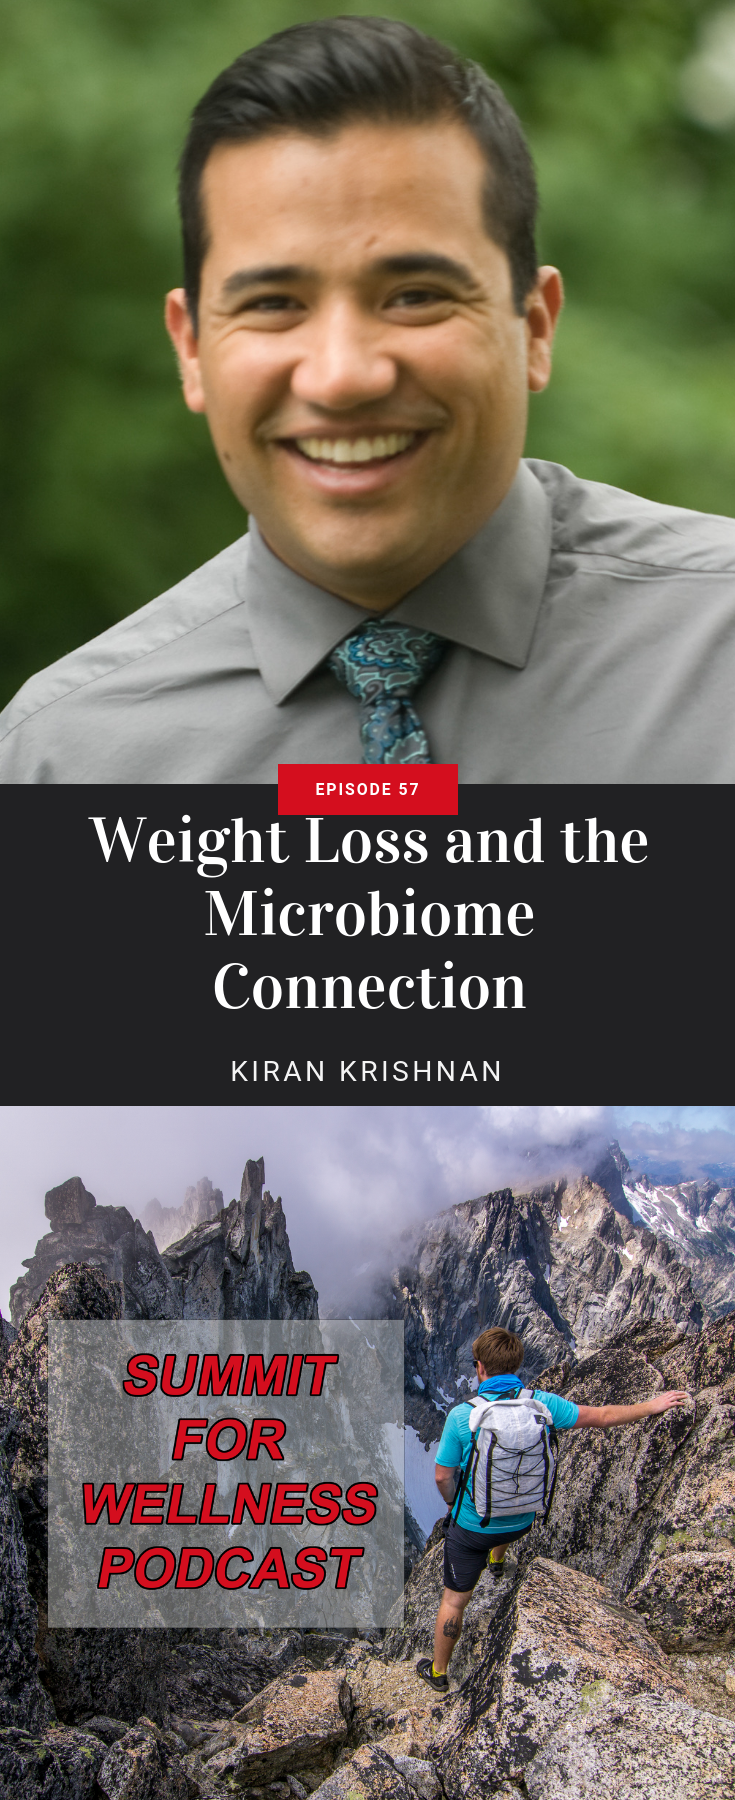 Kiran Krishnan teaches how to optimize the microbiome of the body to lose weight and improve health